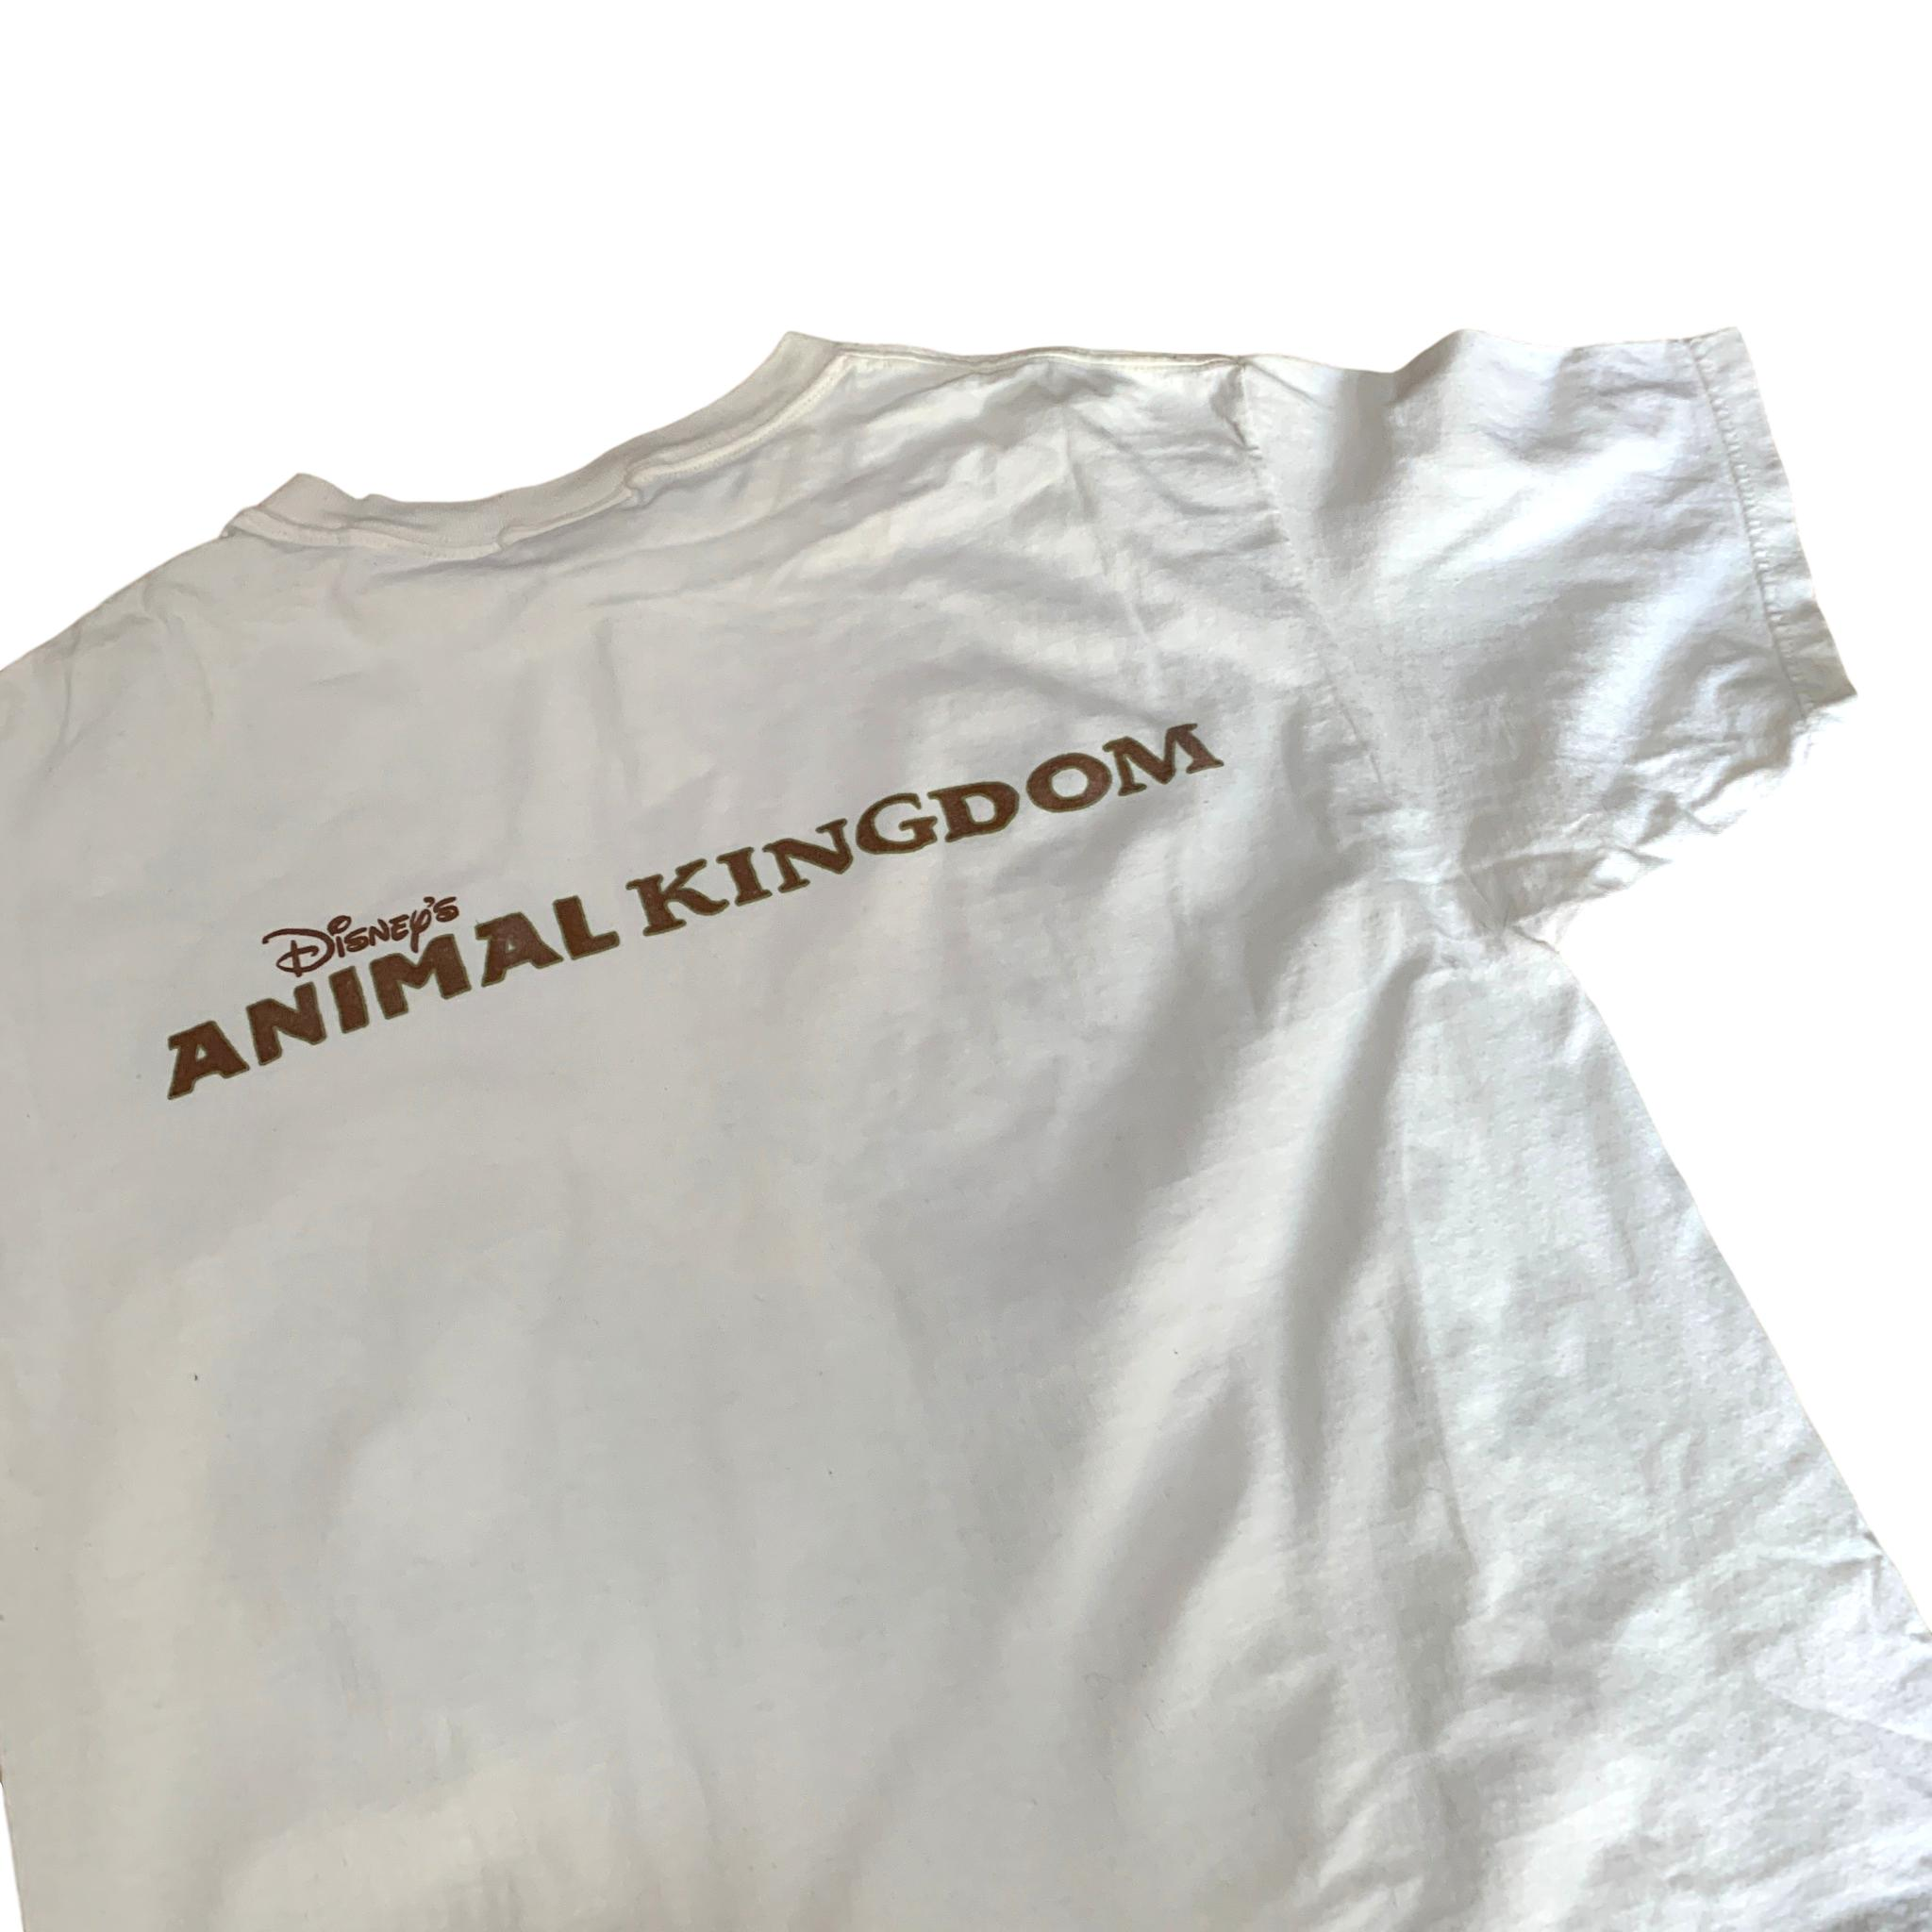 Vintage Walt Disney World 1998 Animal Kingdom T Shirt (M)